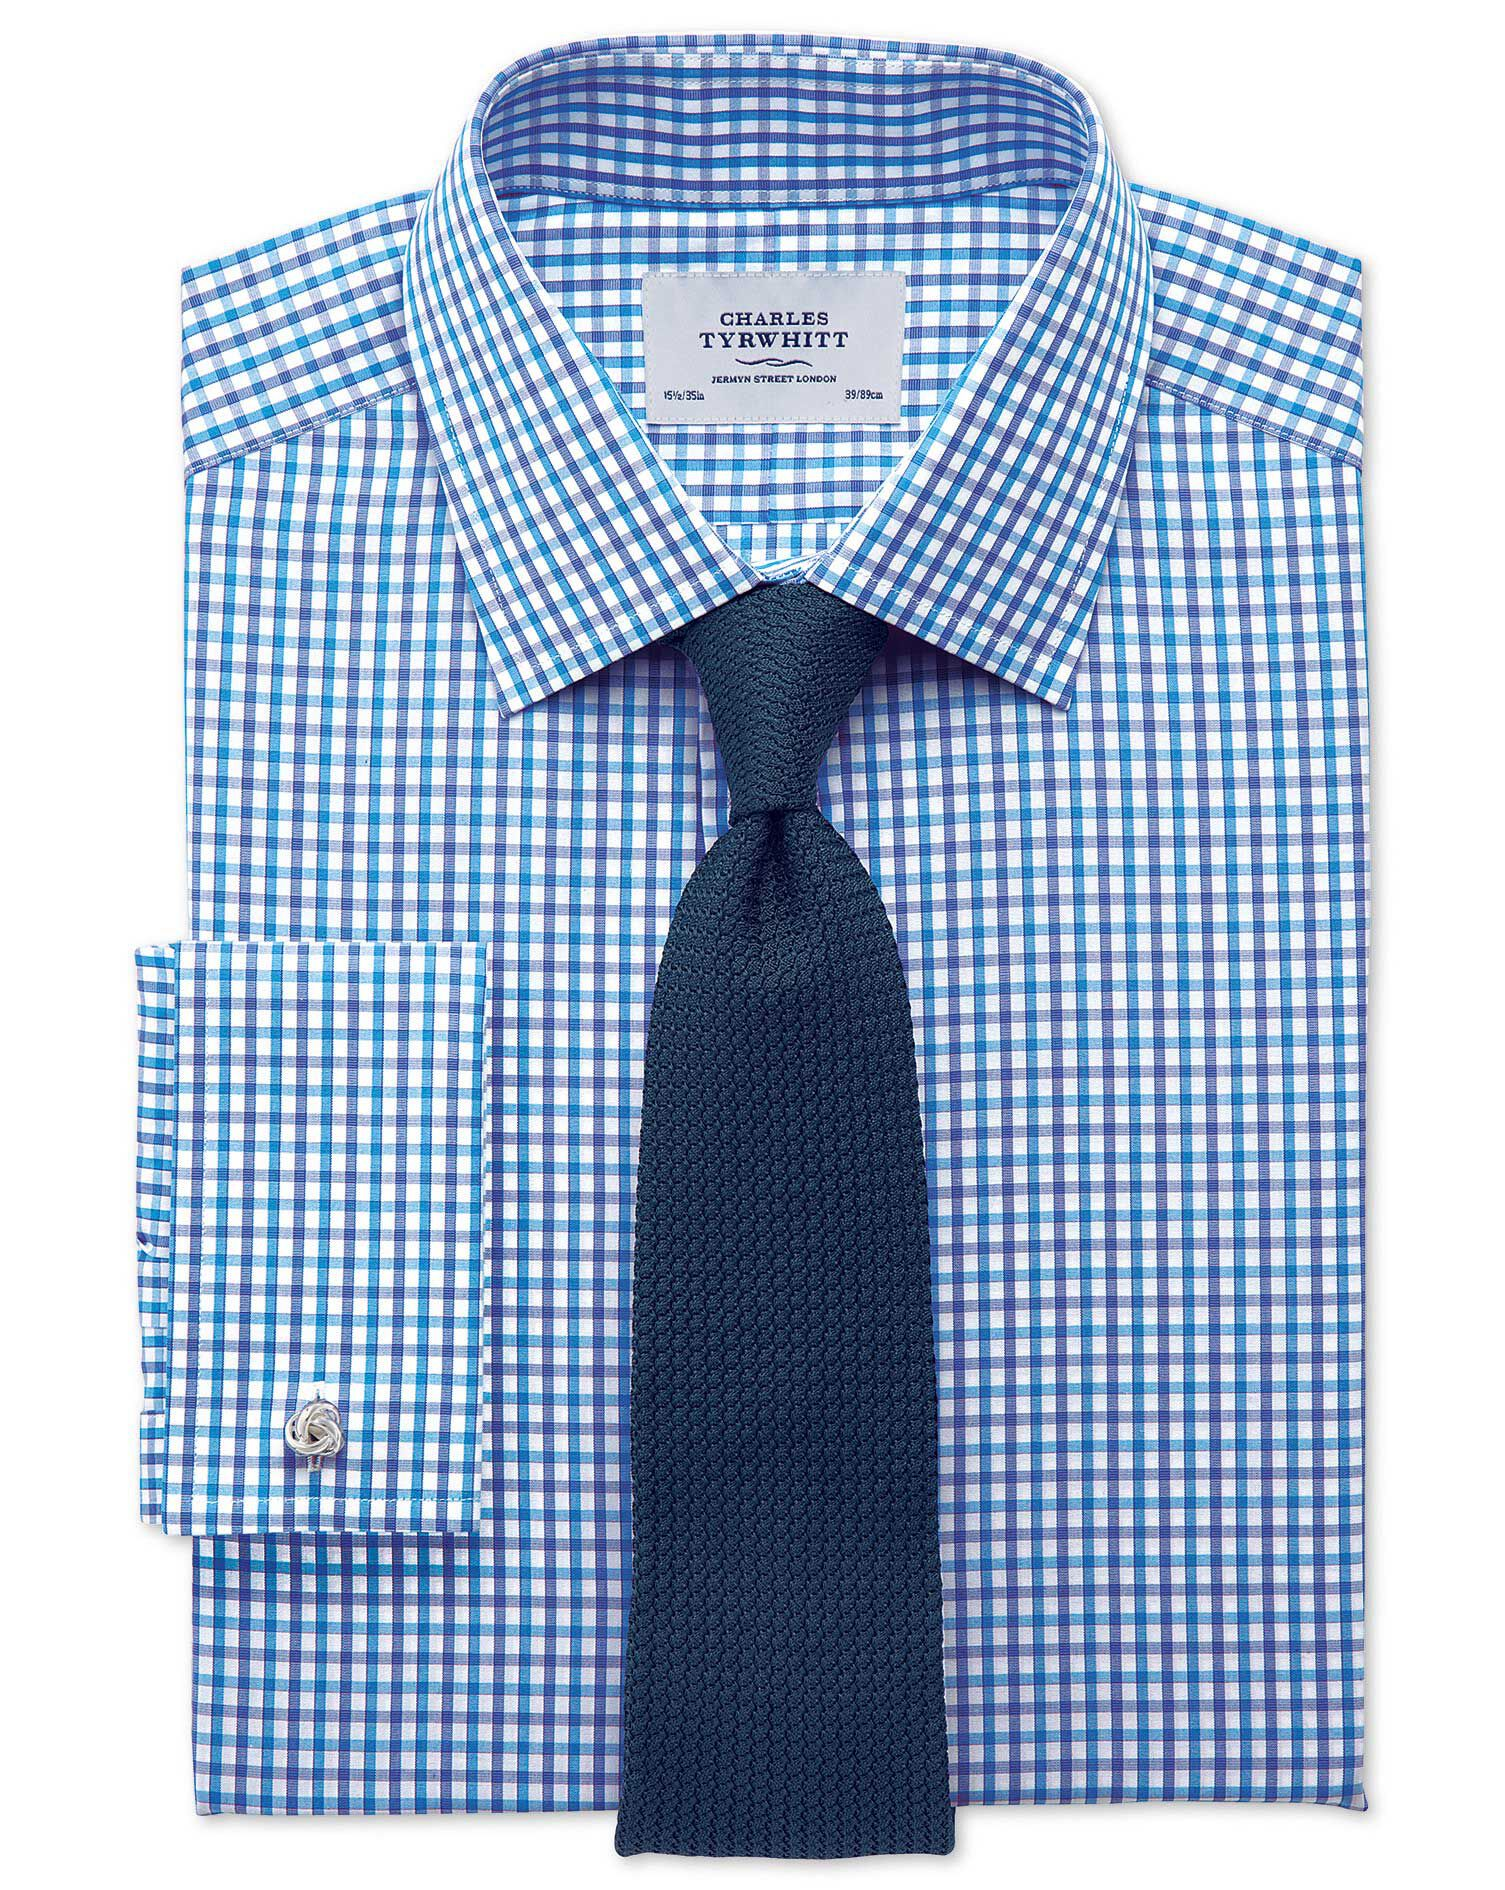 Extra Slim Fit Two Colour Check Blue Cotton Formal Shirt Single Cuff Size 14.5/33 by Charles Tyrwhit